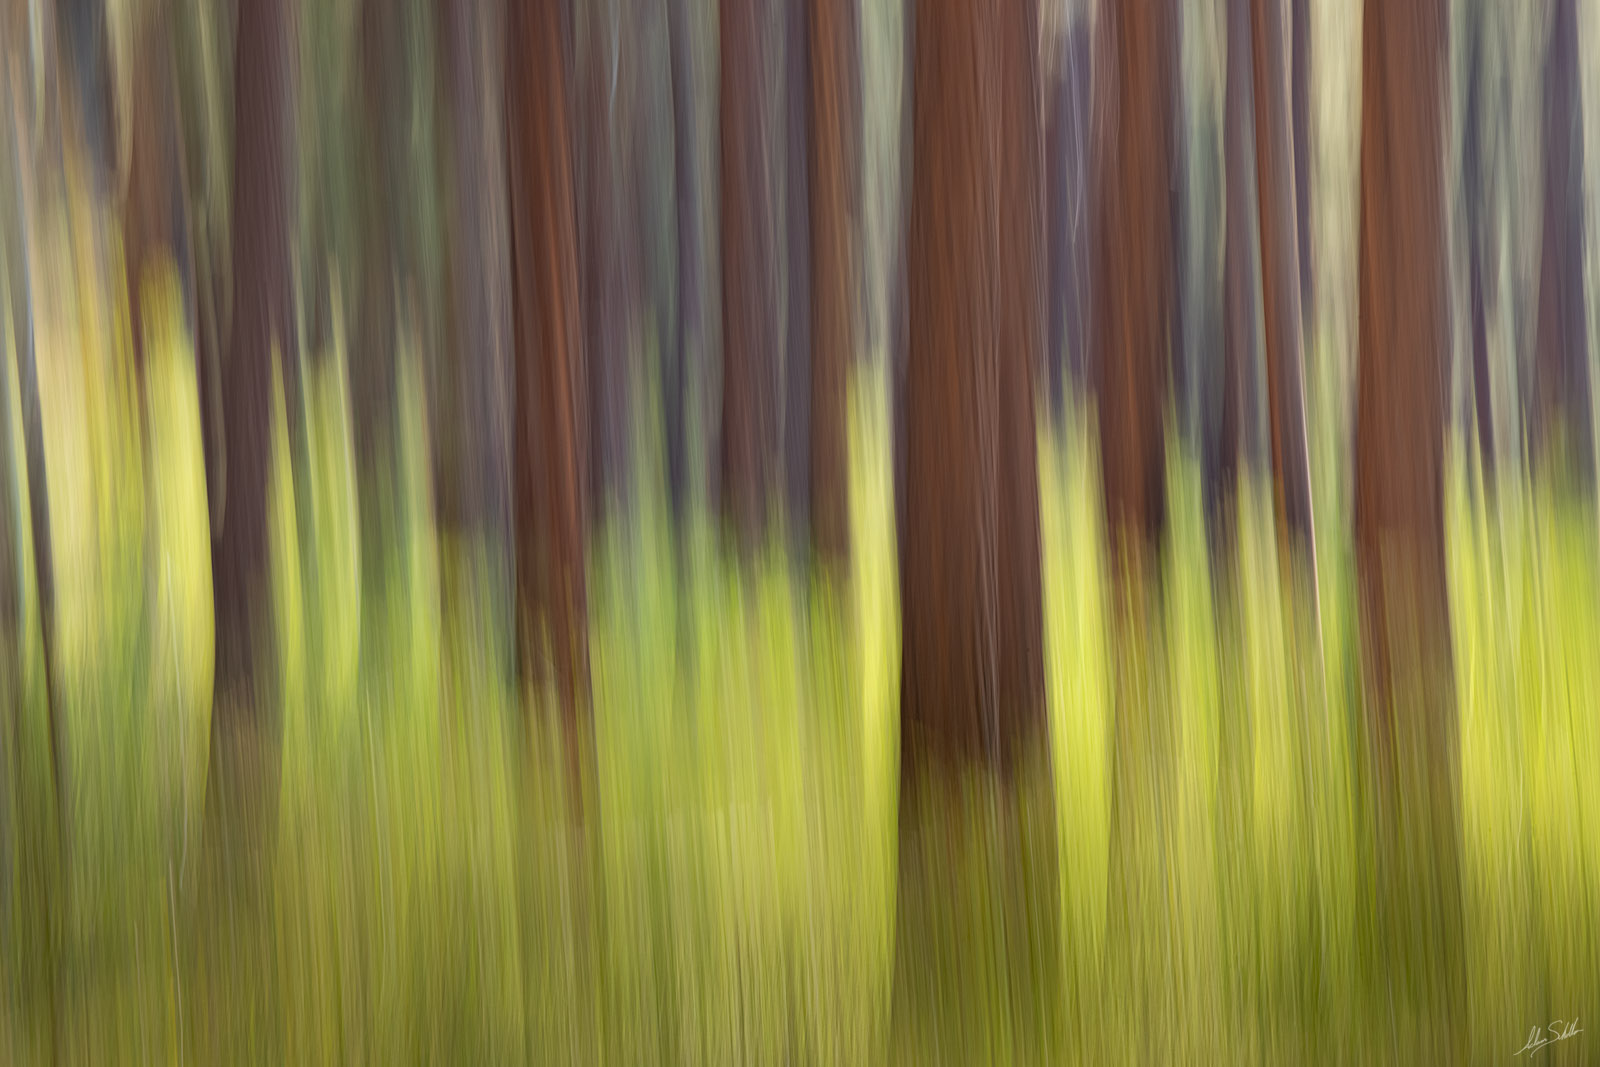 I used a long exposure to create this abstract interpretation of the forests of the Point Sublime section on the North Rim of...